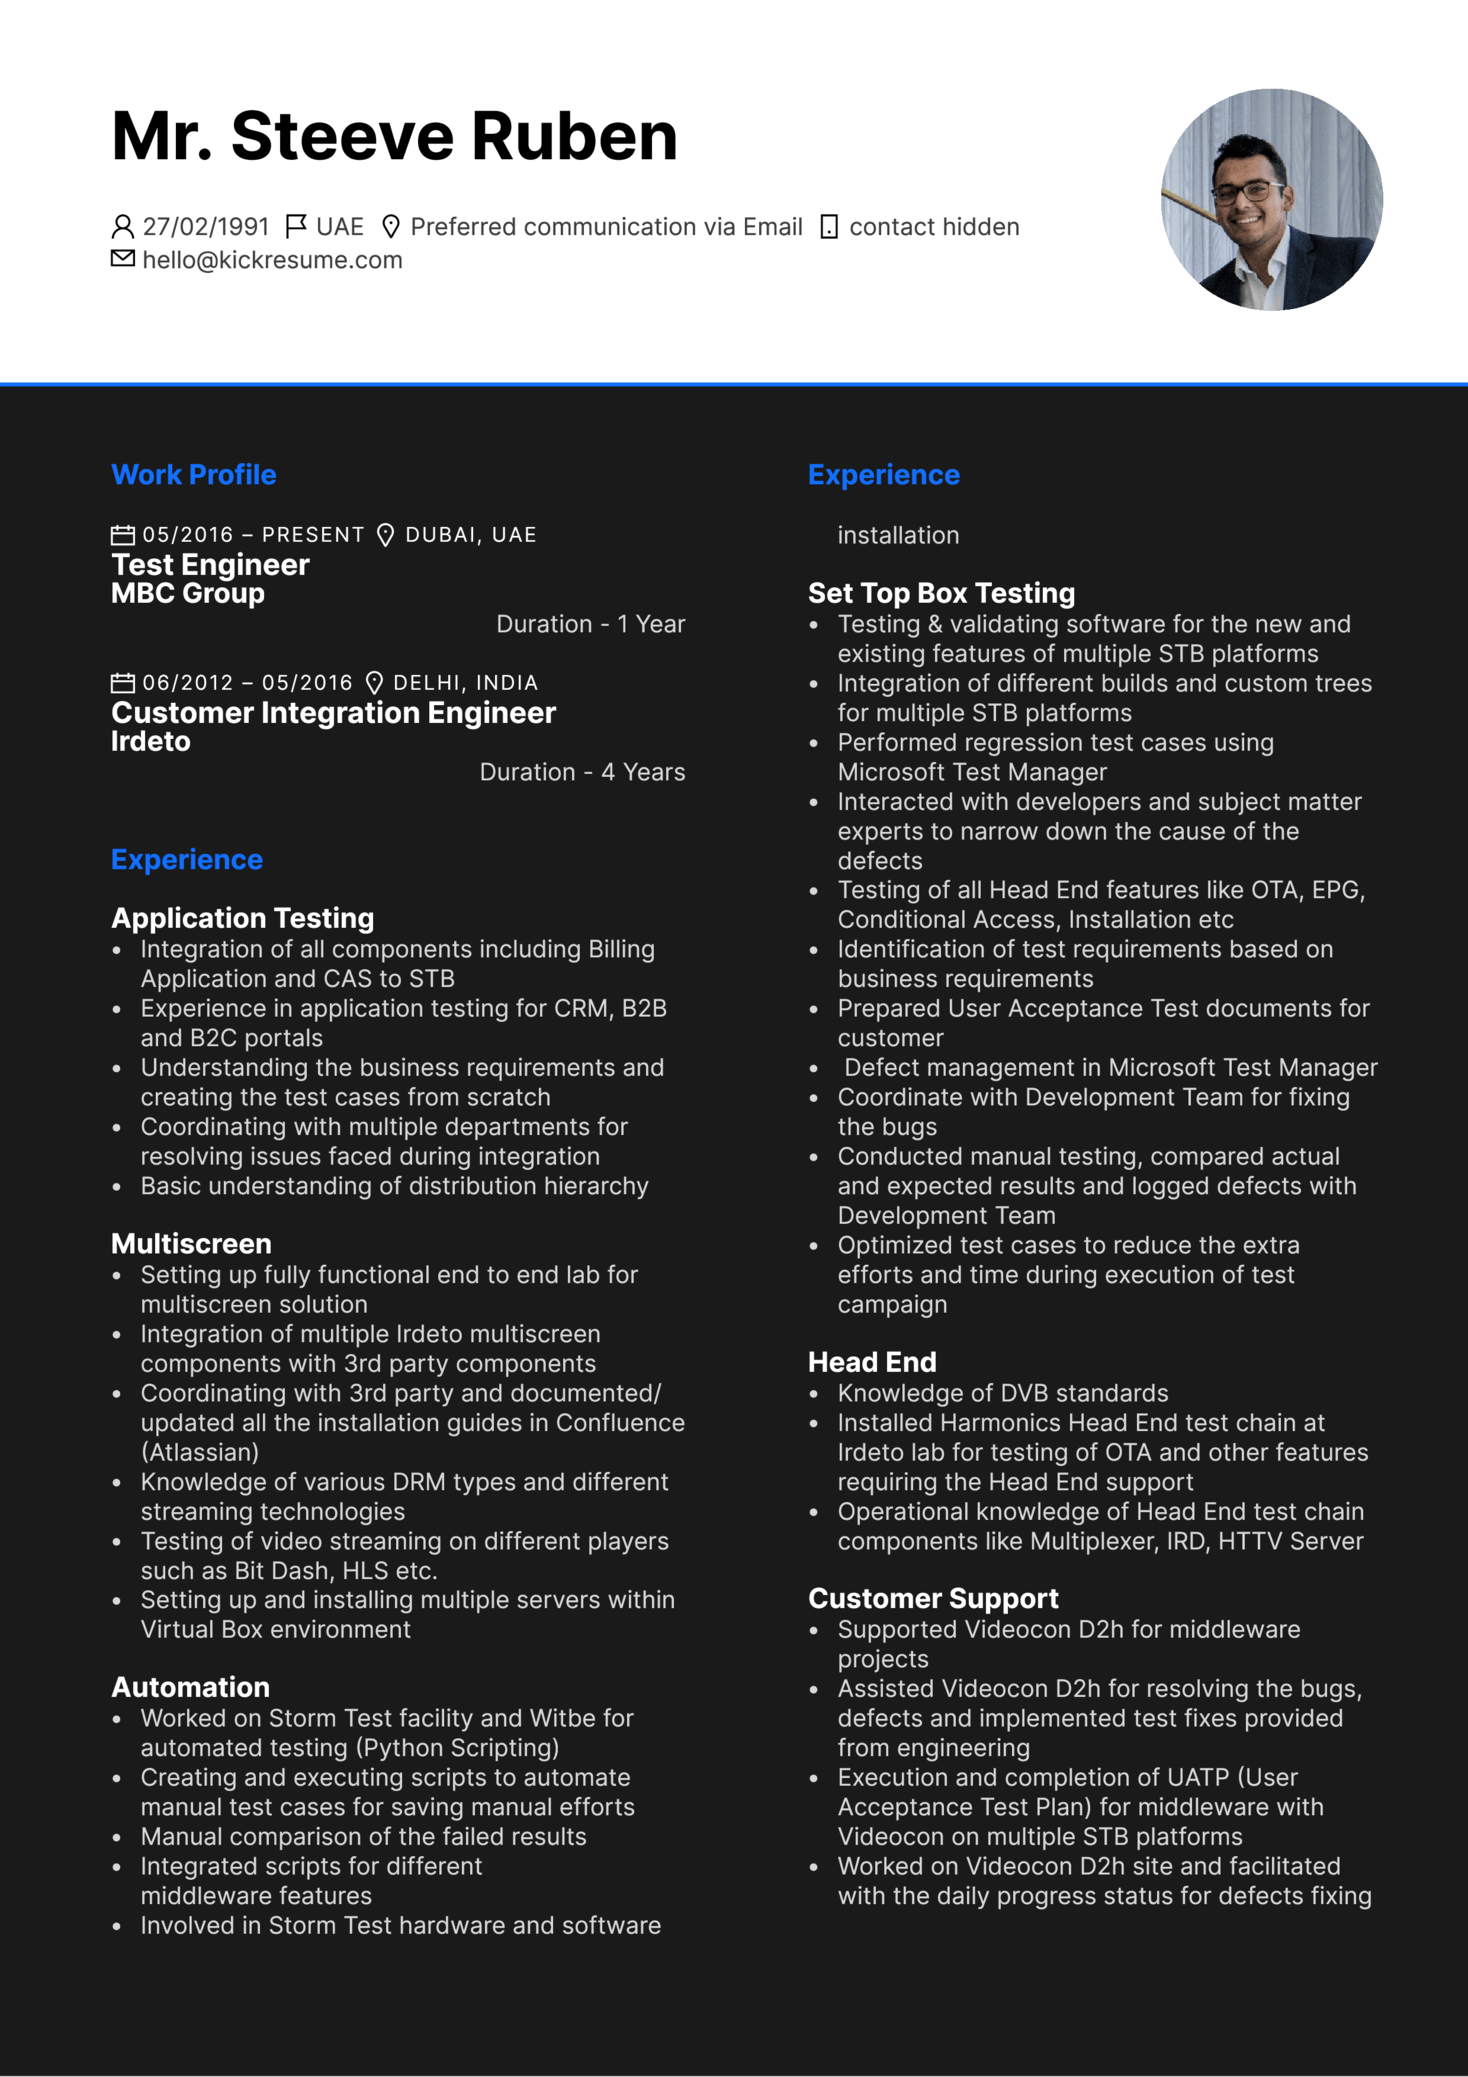 Senior test engineer resume example | Resume samples | Career help ...